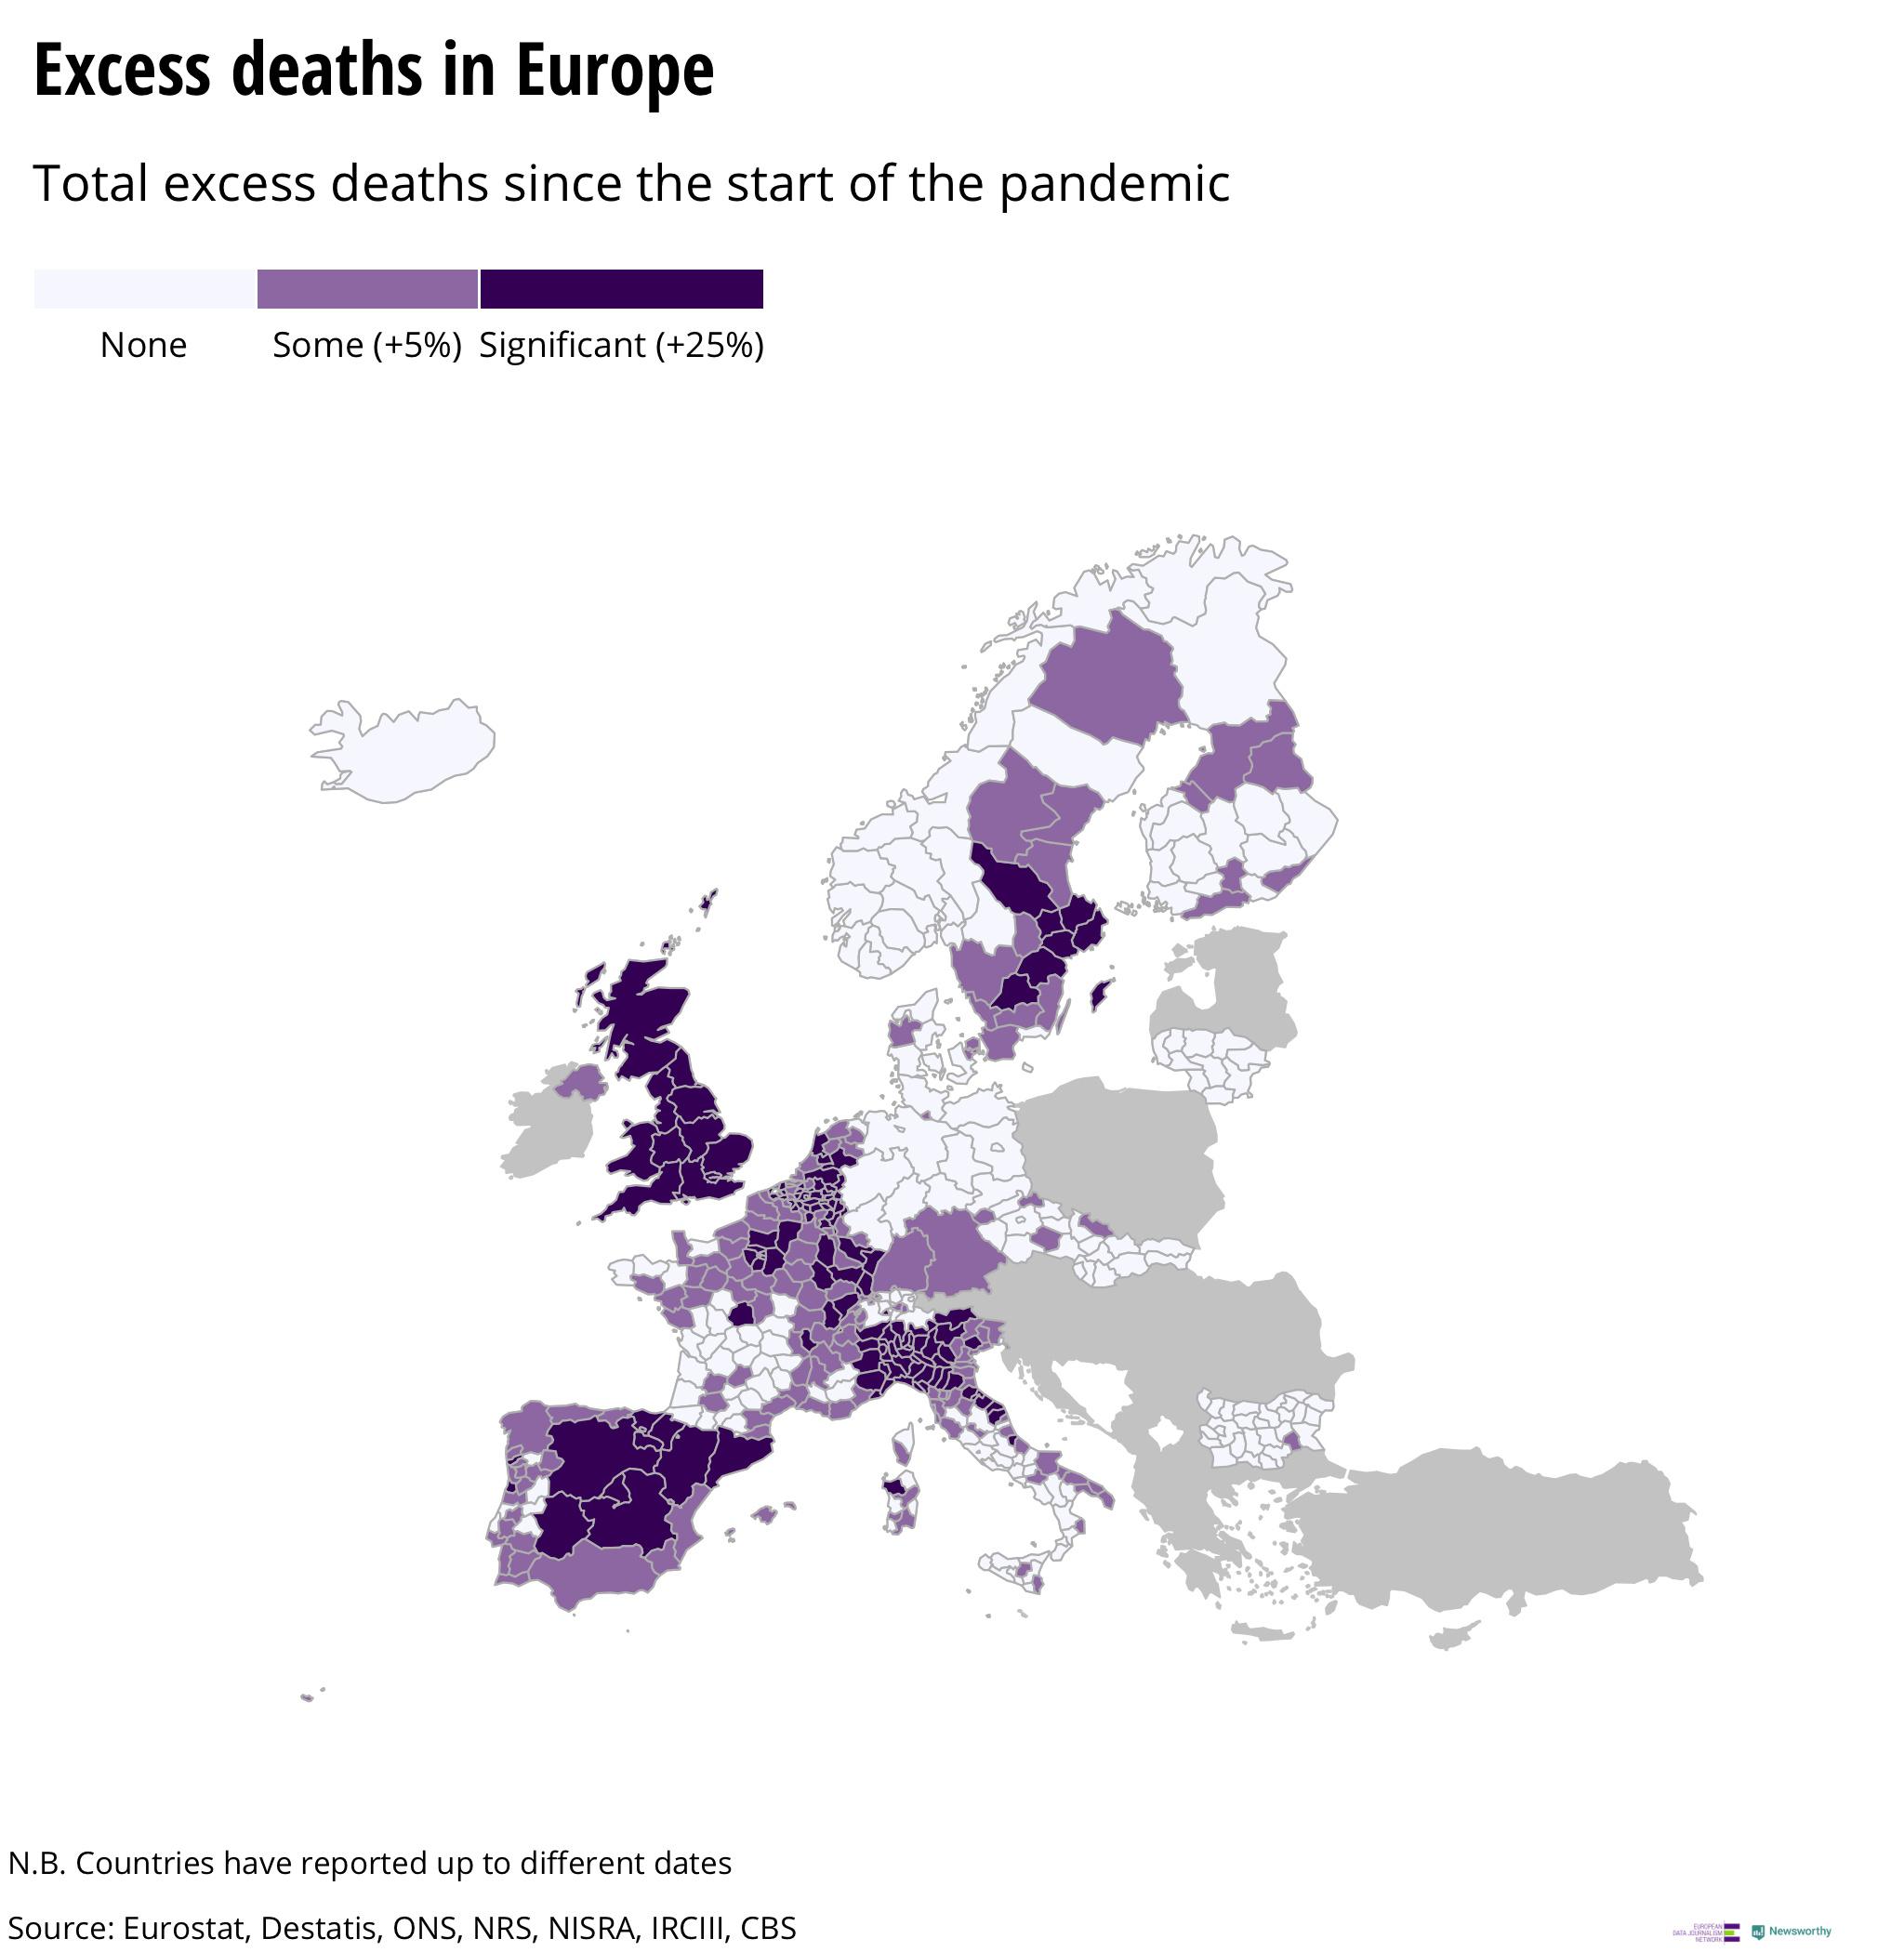 Excess deaths across Europe